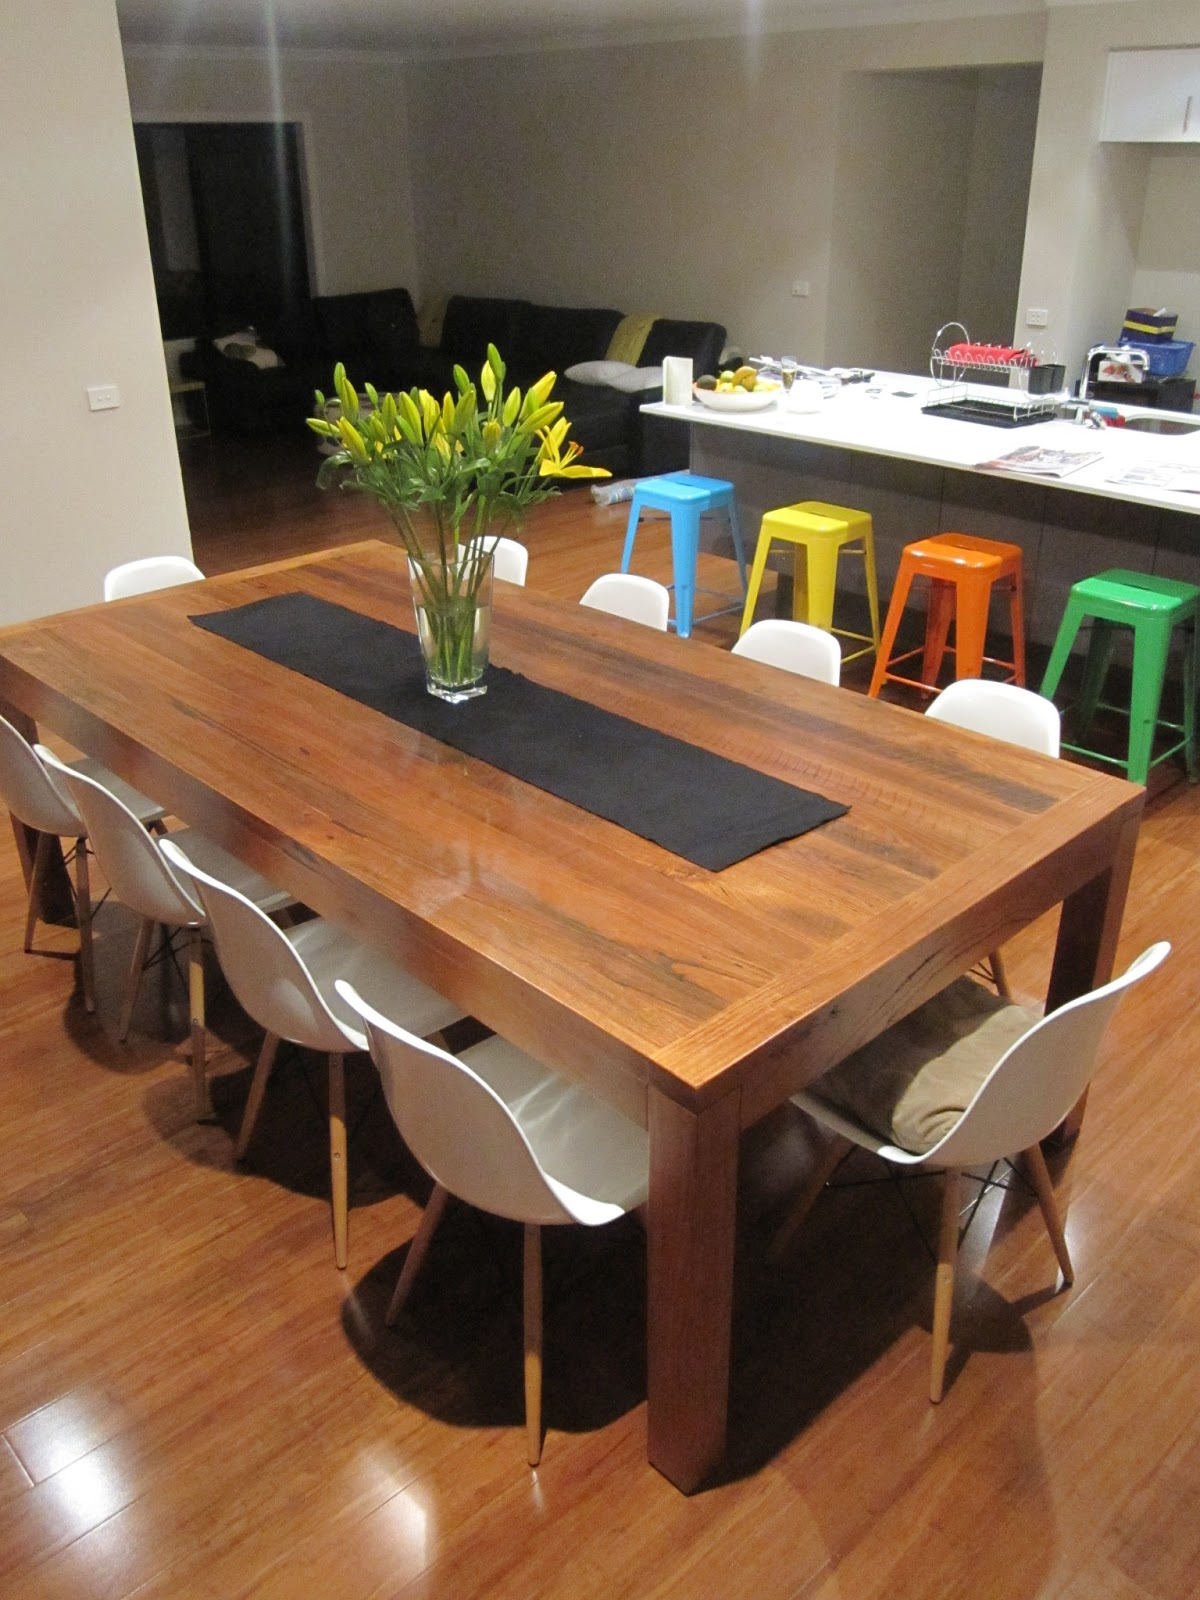 Ideal Looking down whilst standing on the kids table Have a look at our stunning dining table made of reclaimed timber from old Melbourne houses It was custom